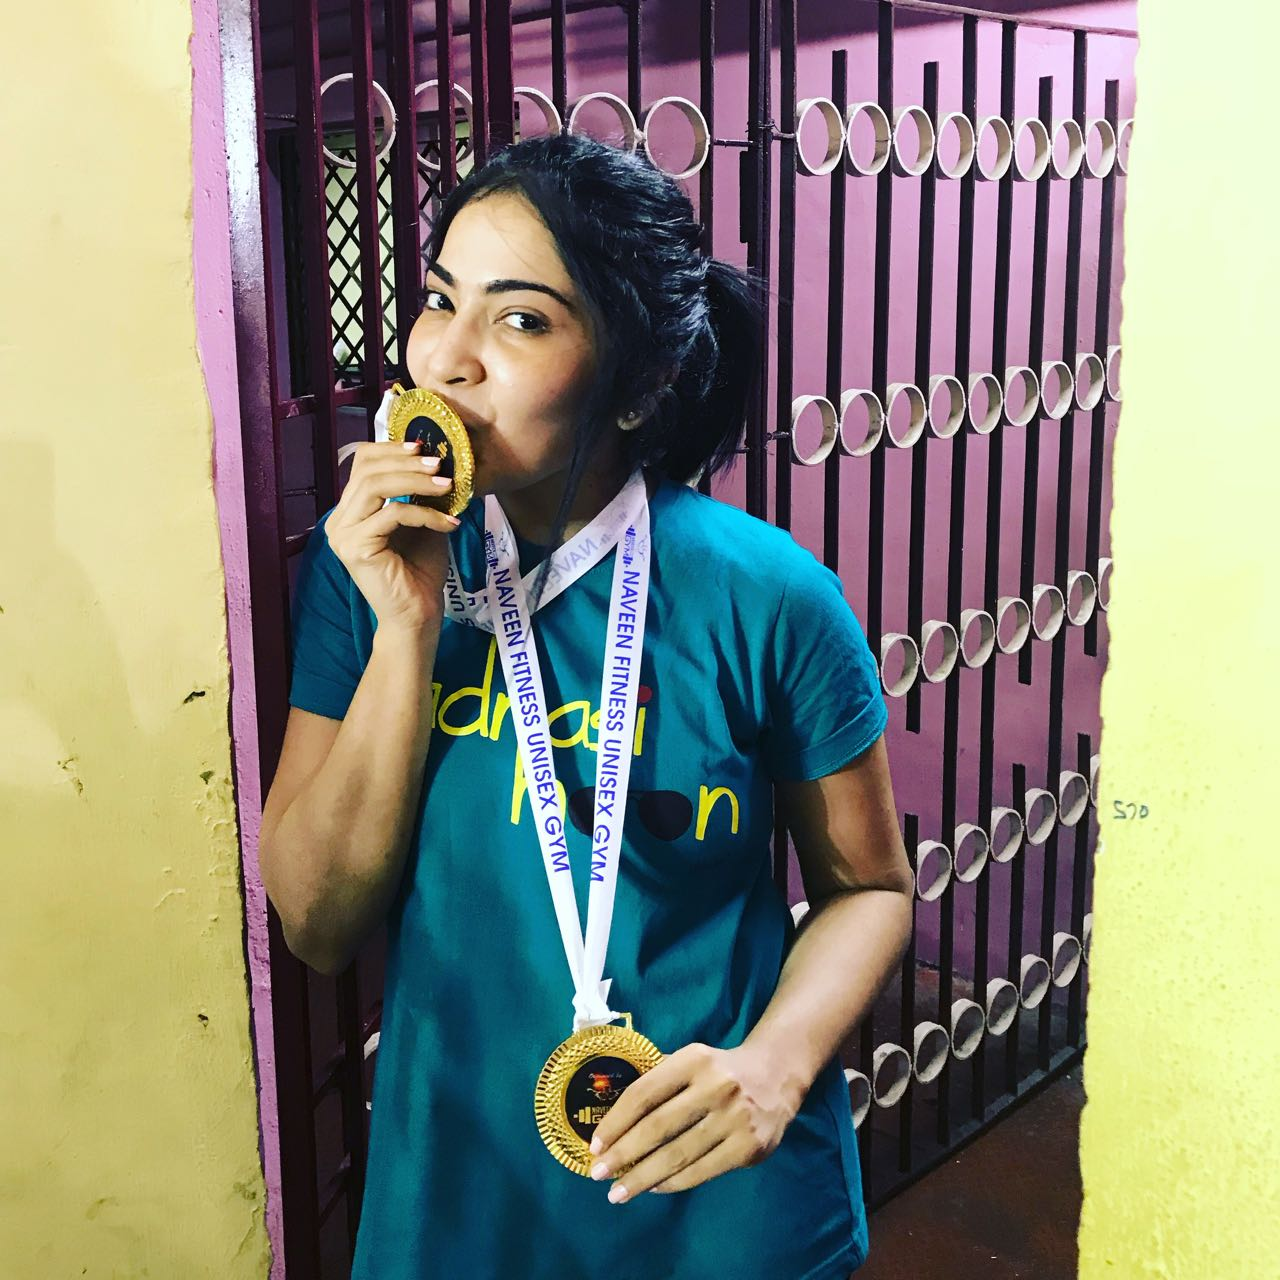 vj_ramya_anchor_body_building_champion_kissing_medal_still_2